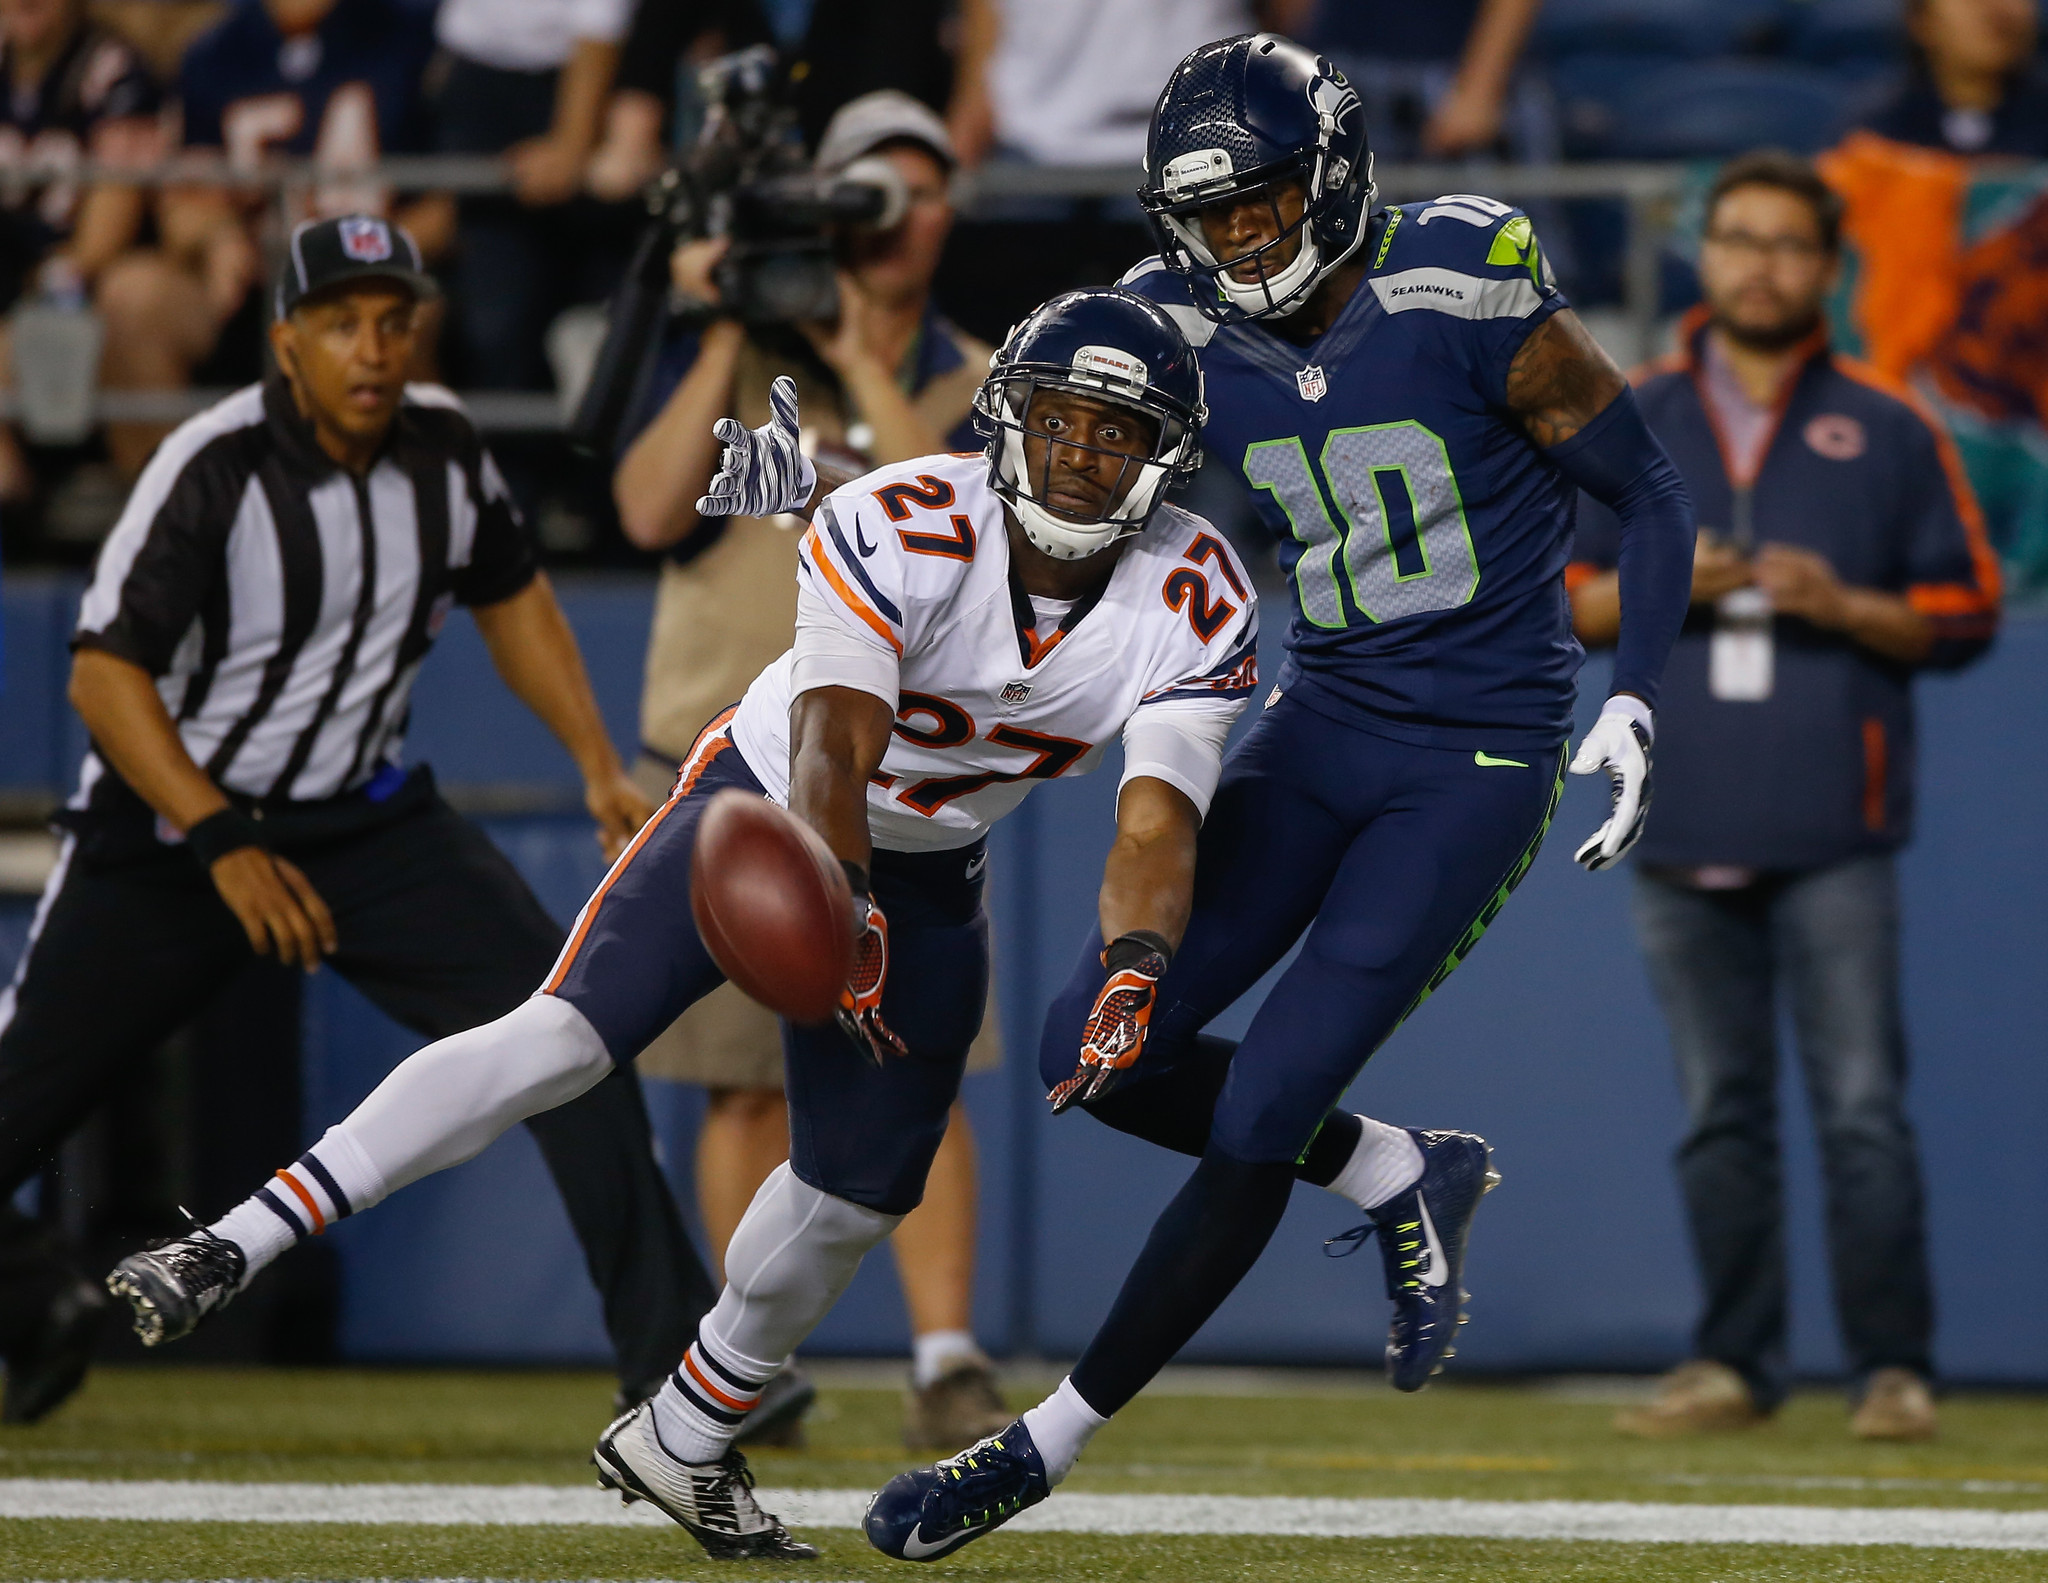 Bears starters no match for Seahawks in 34-6 loss